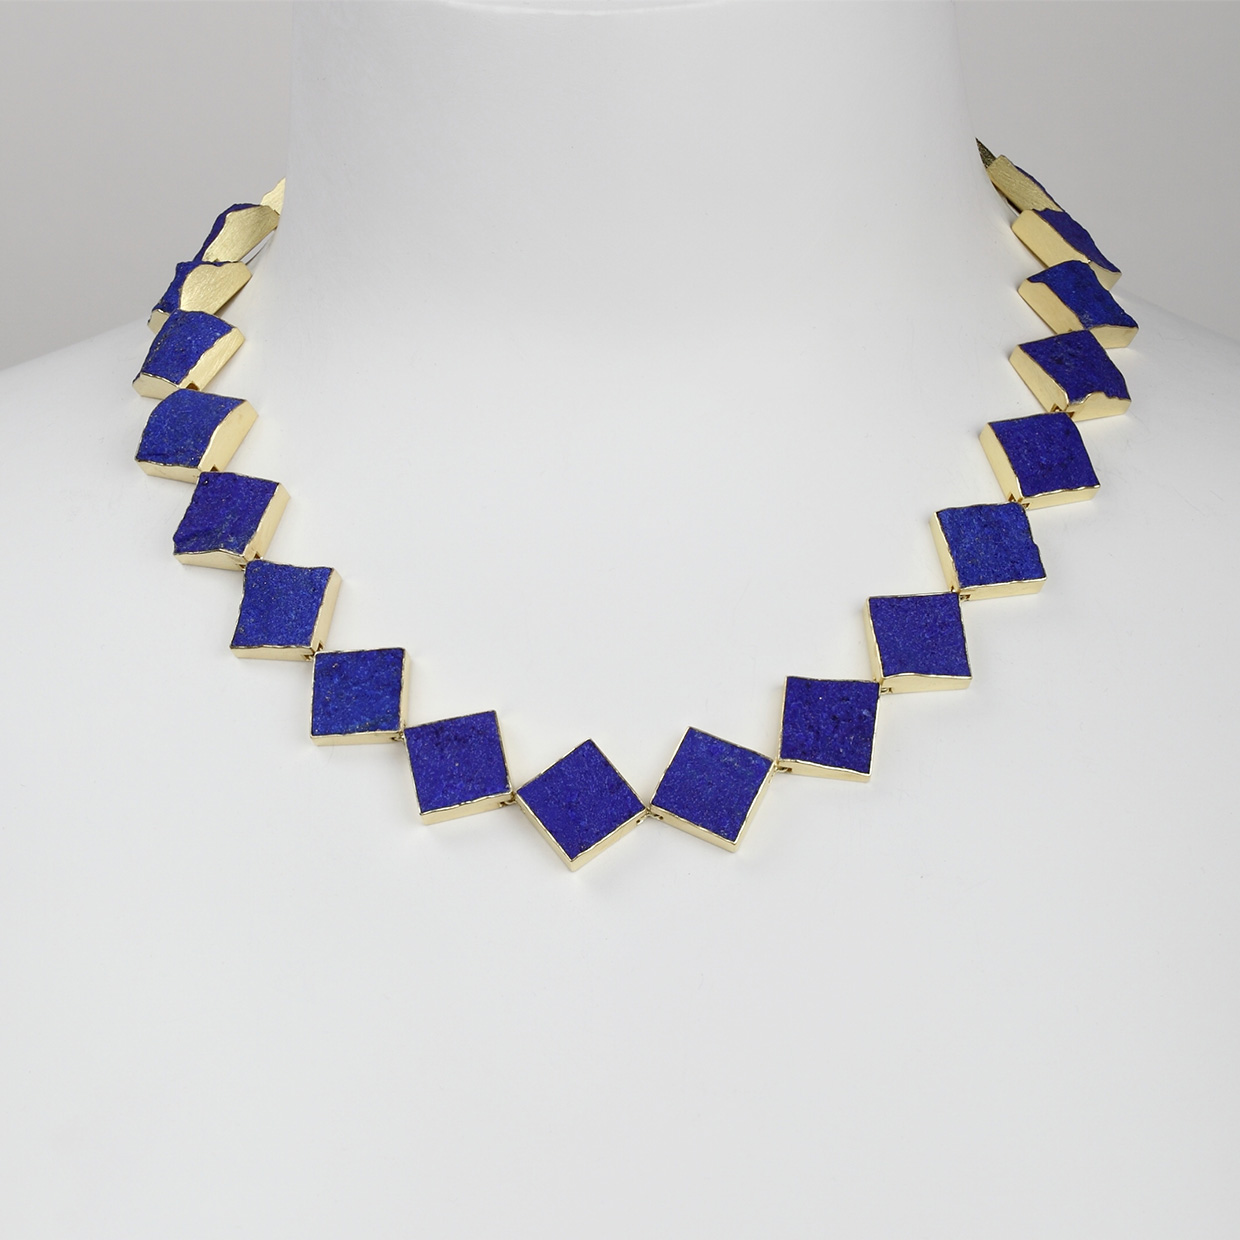 necklace  2017  gold  750  lapislazuli  512x20  mm